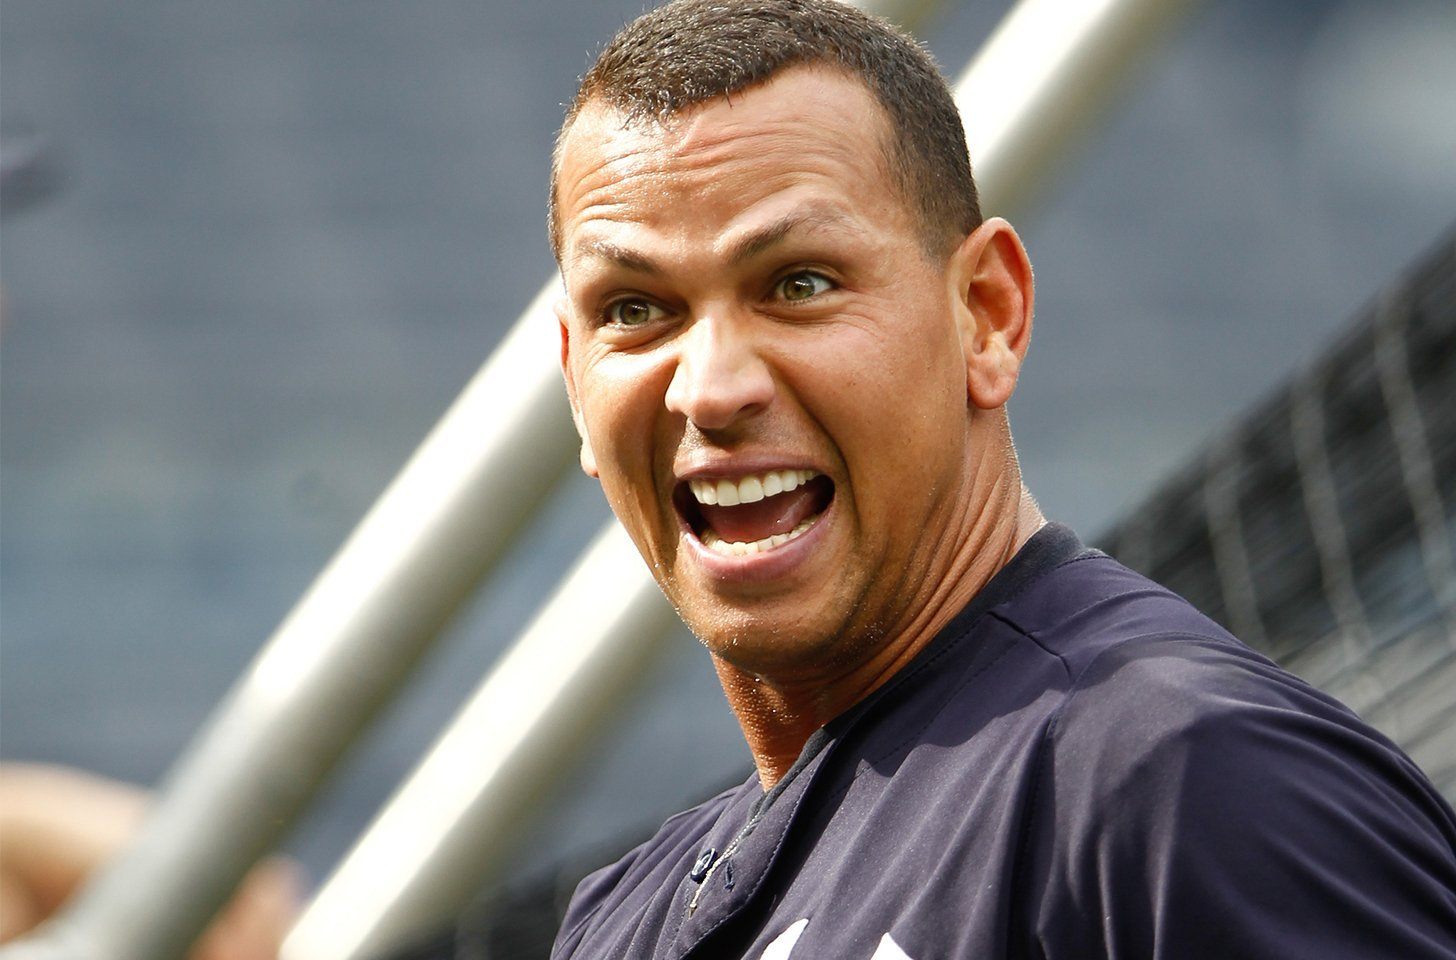 'Weird' Alex Rodriguez Becoming Obsessed With Jennifer Lopez And Ben Affleck?